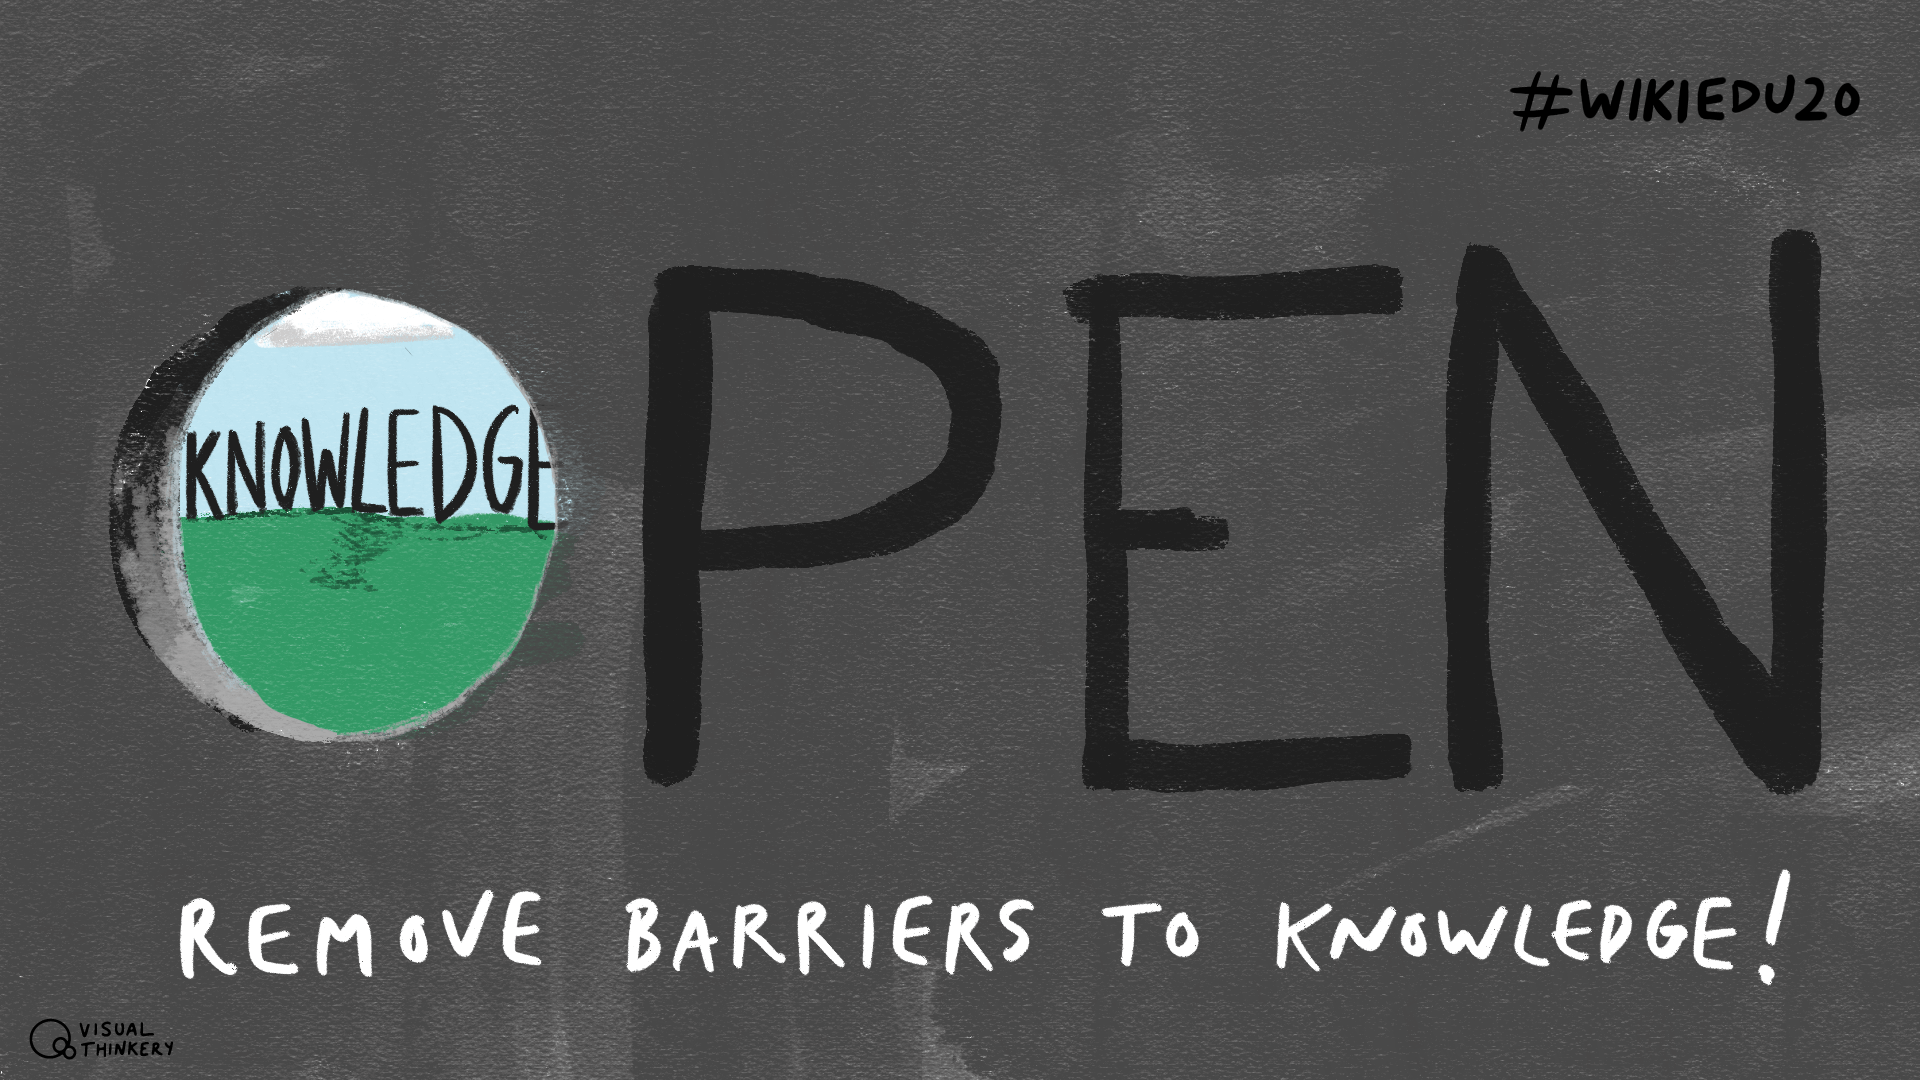 OPEN - remove barriers to knowledge